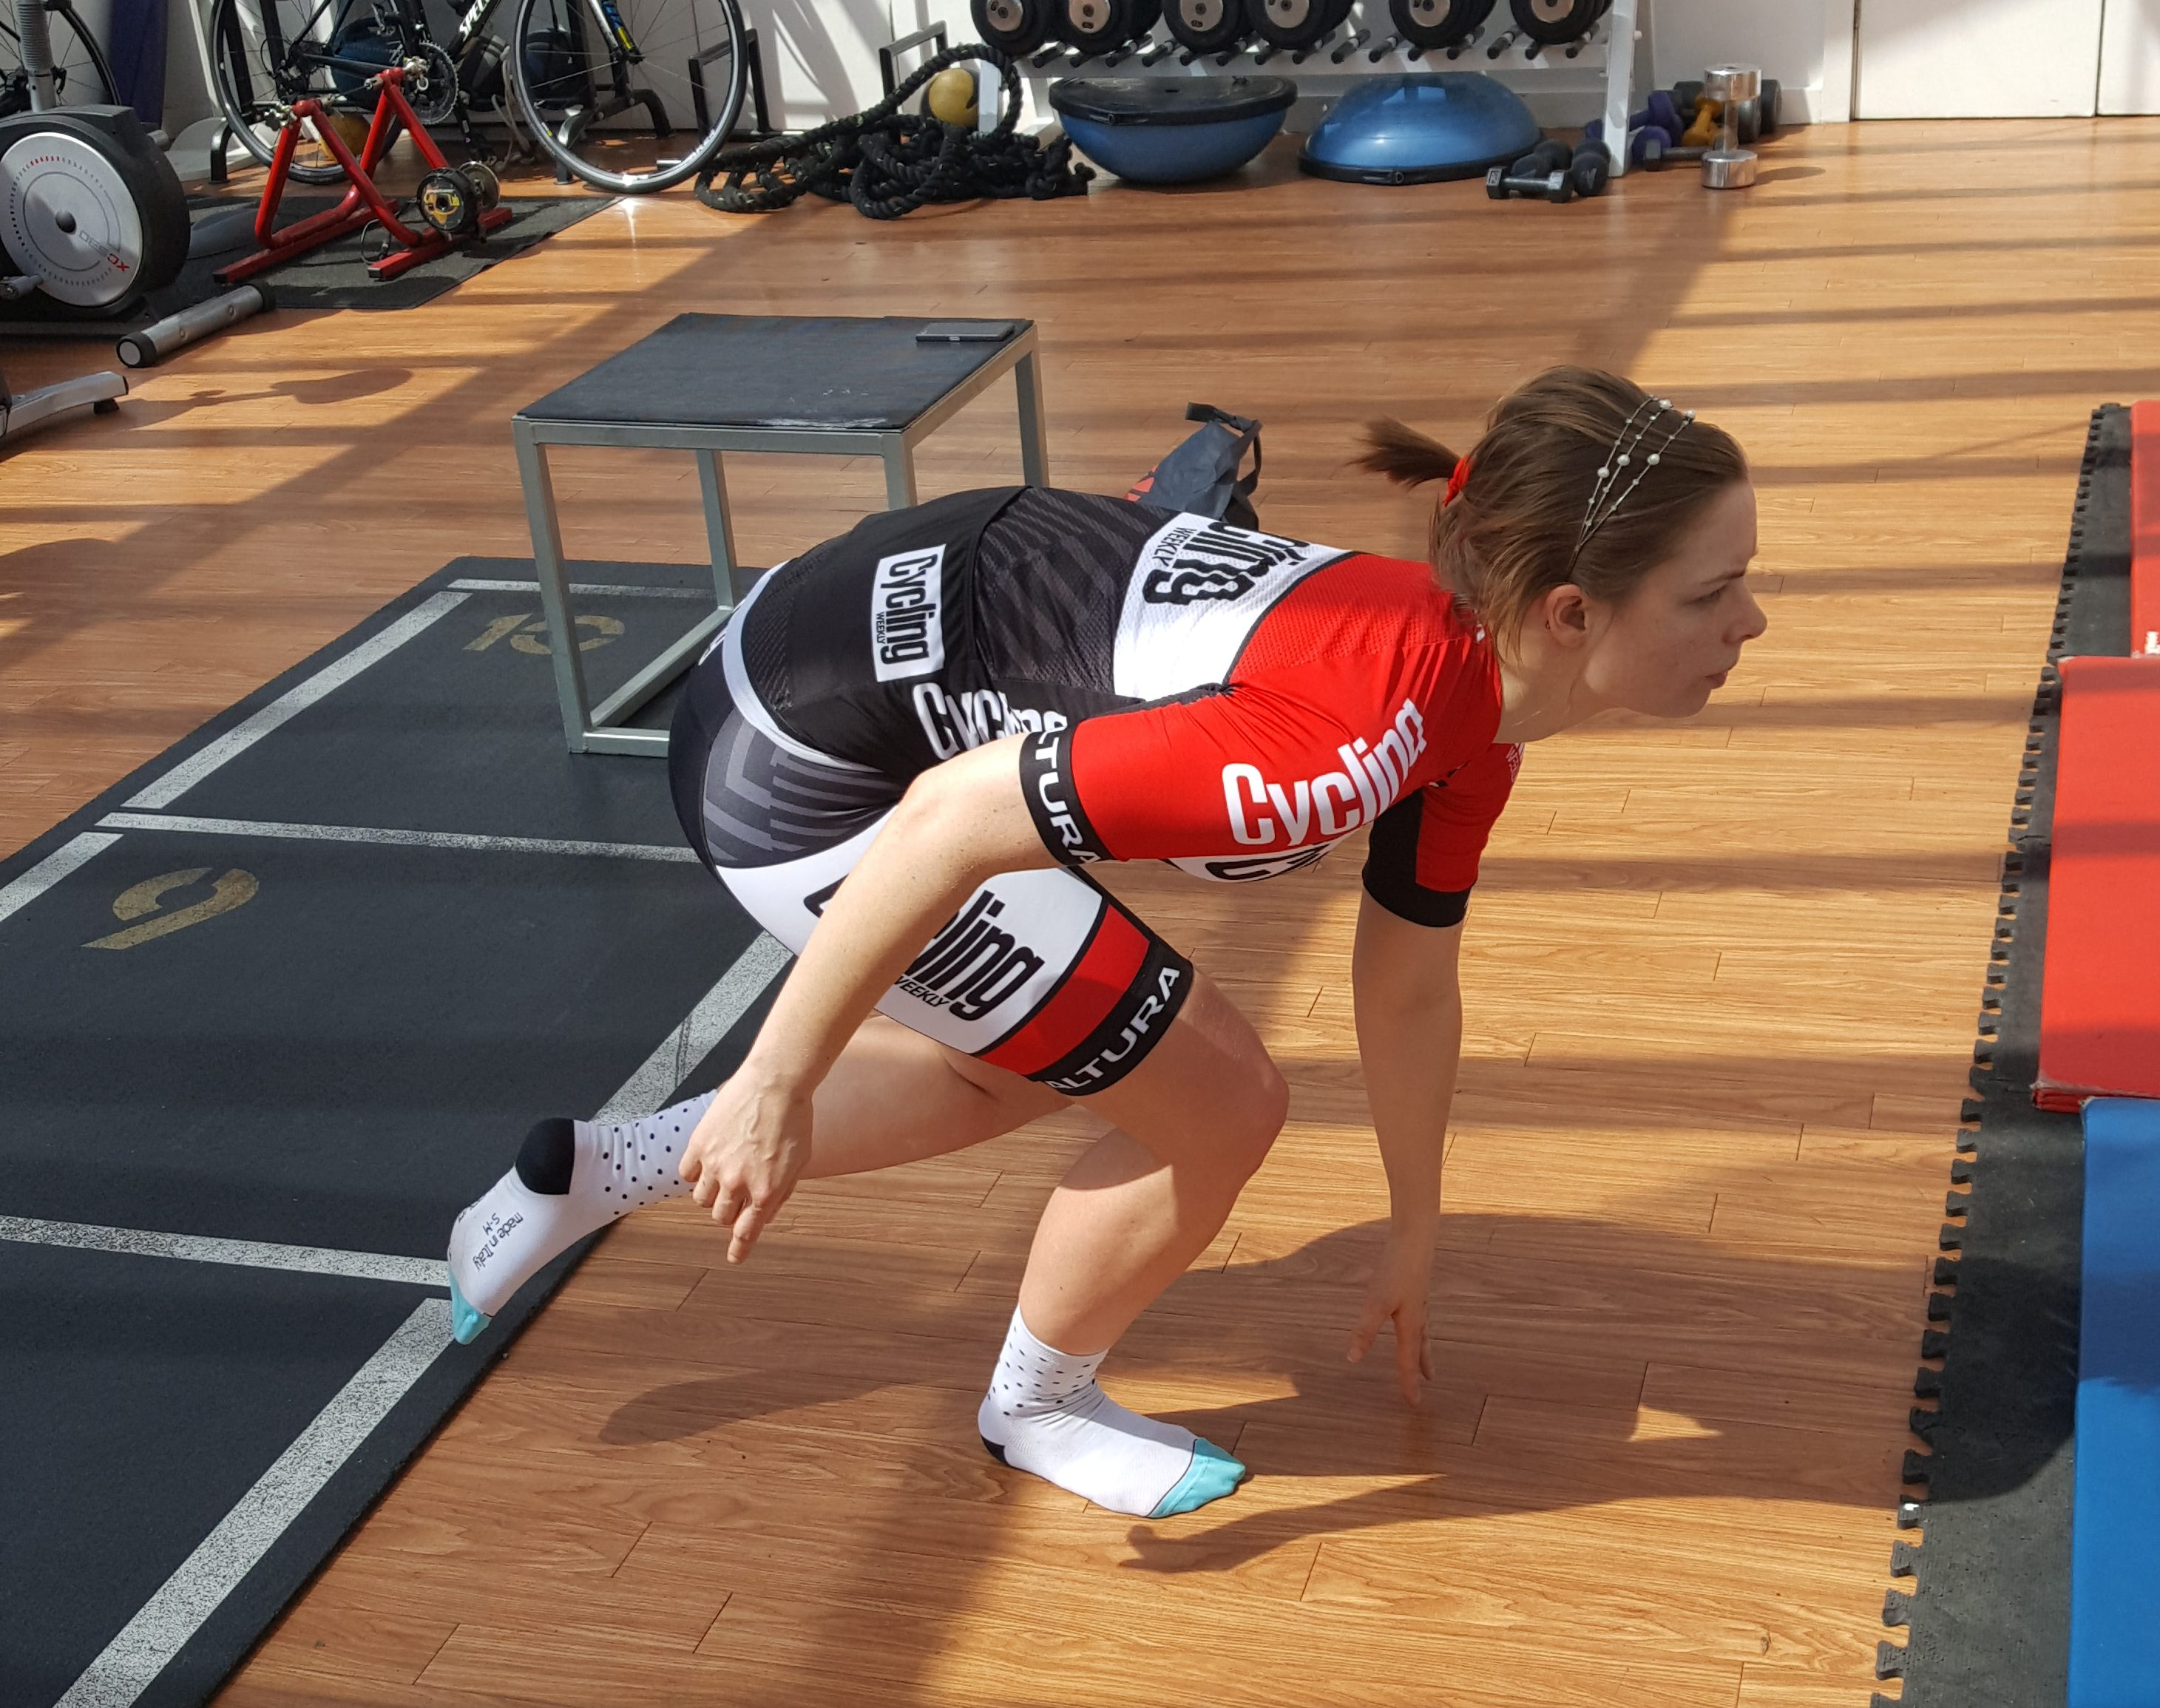 """... down – adding """"over time, you can do this loaded with a bar – but you need to get proper form with the knee tracking straight – and not inwards – first."""